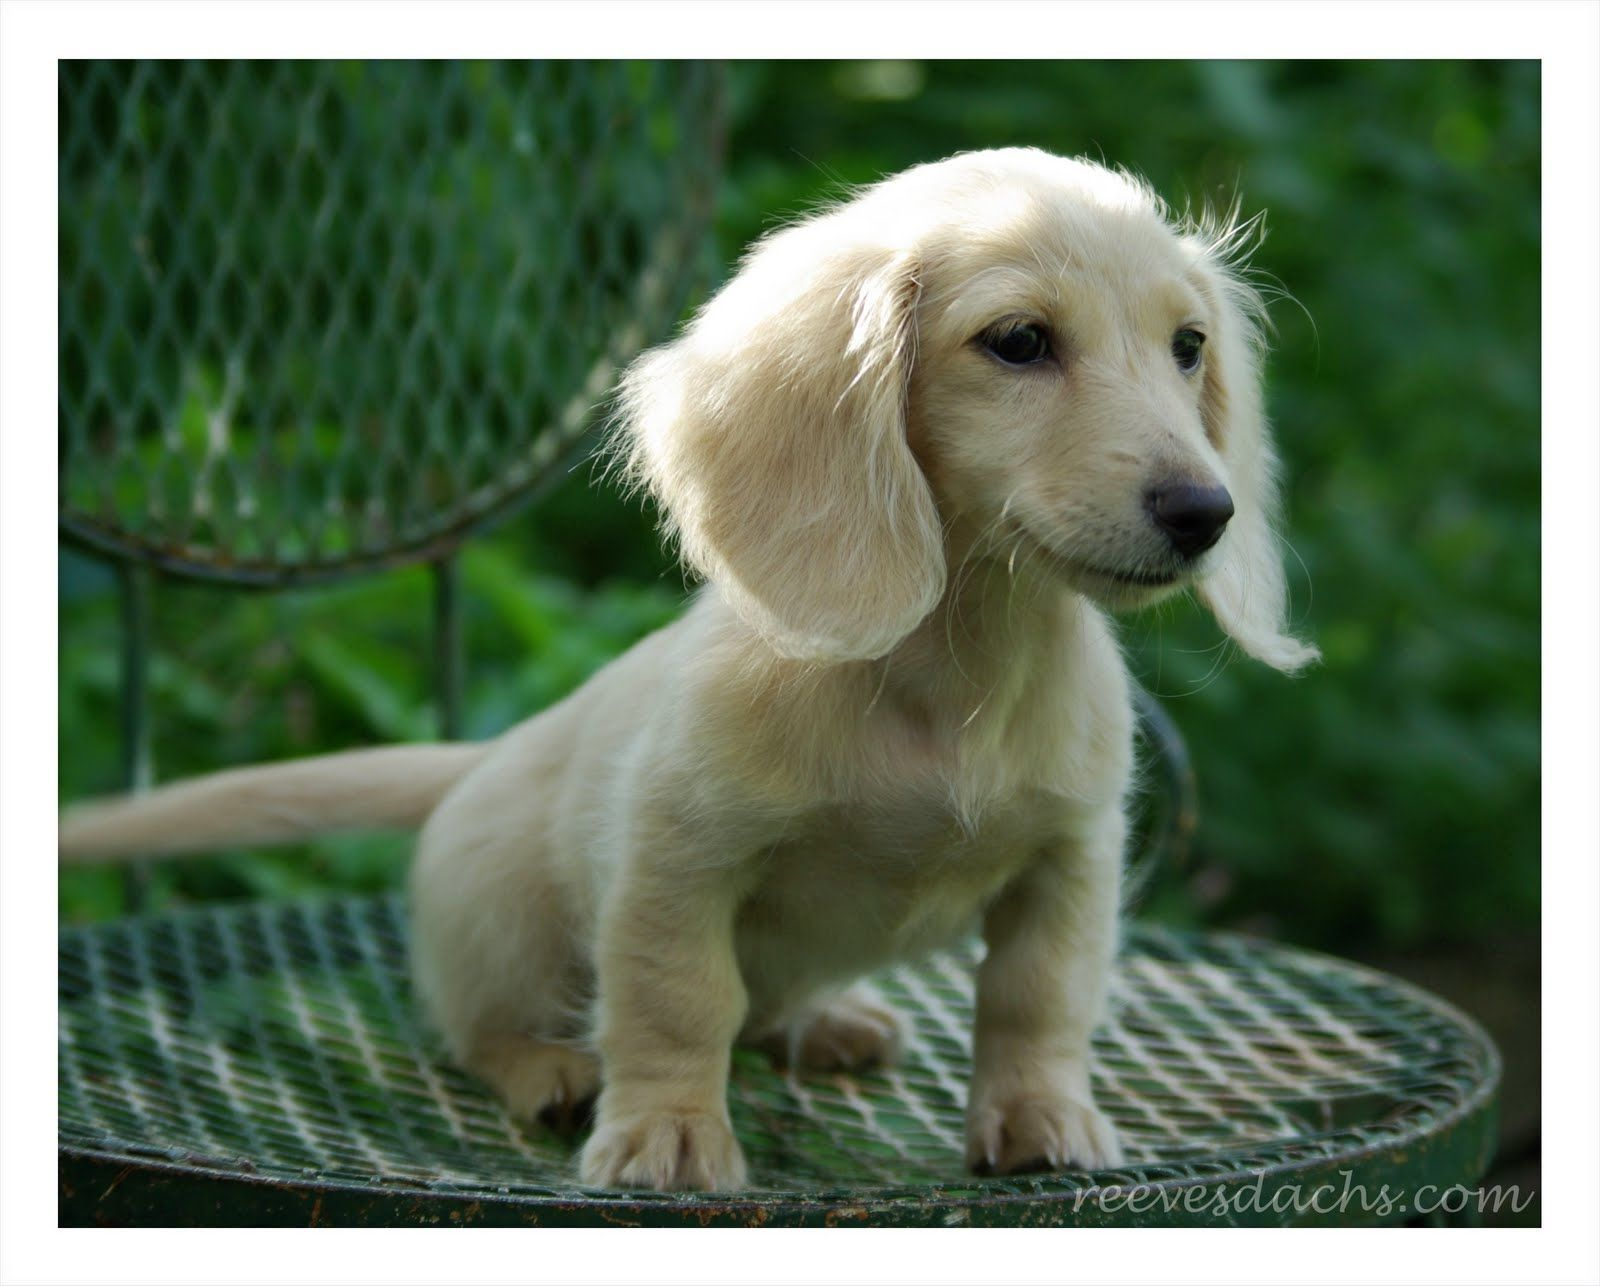 Breeder Of True To Size Miniature Dachshund Puppies Diamond Doxies Specializes In Smooth And Long Hair Dachshund Breed Dachshund Puppies Long Haired Dachshund